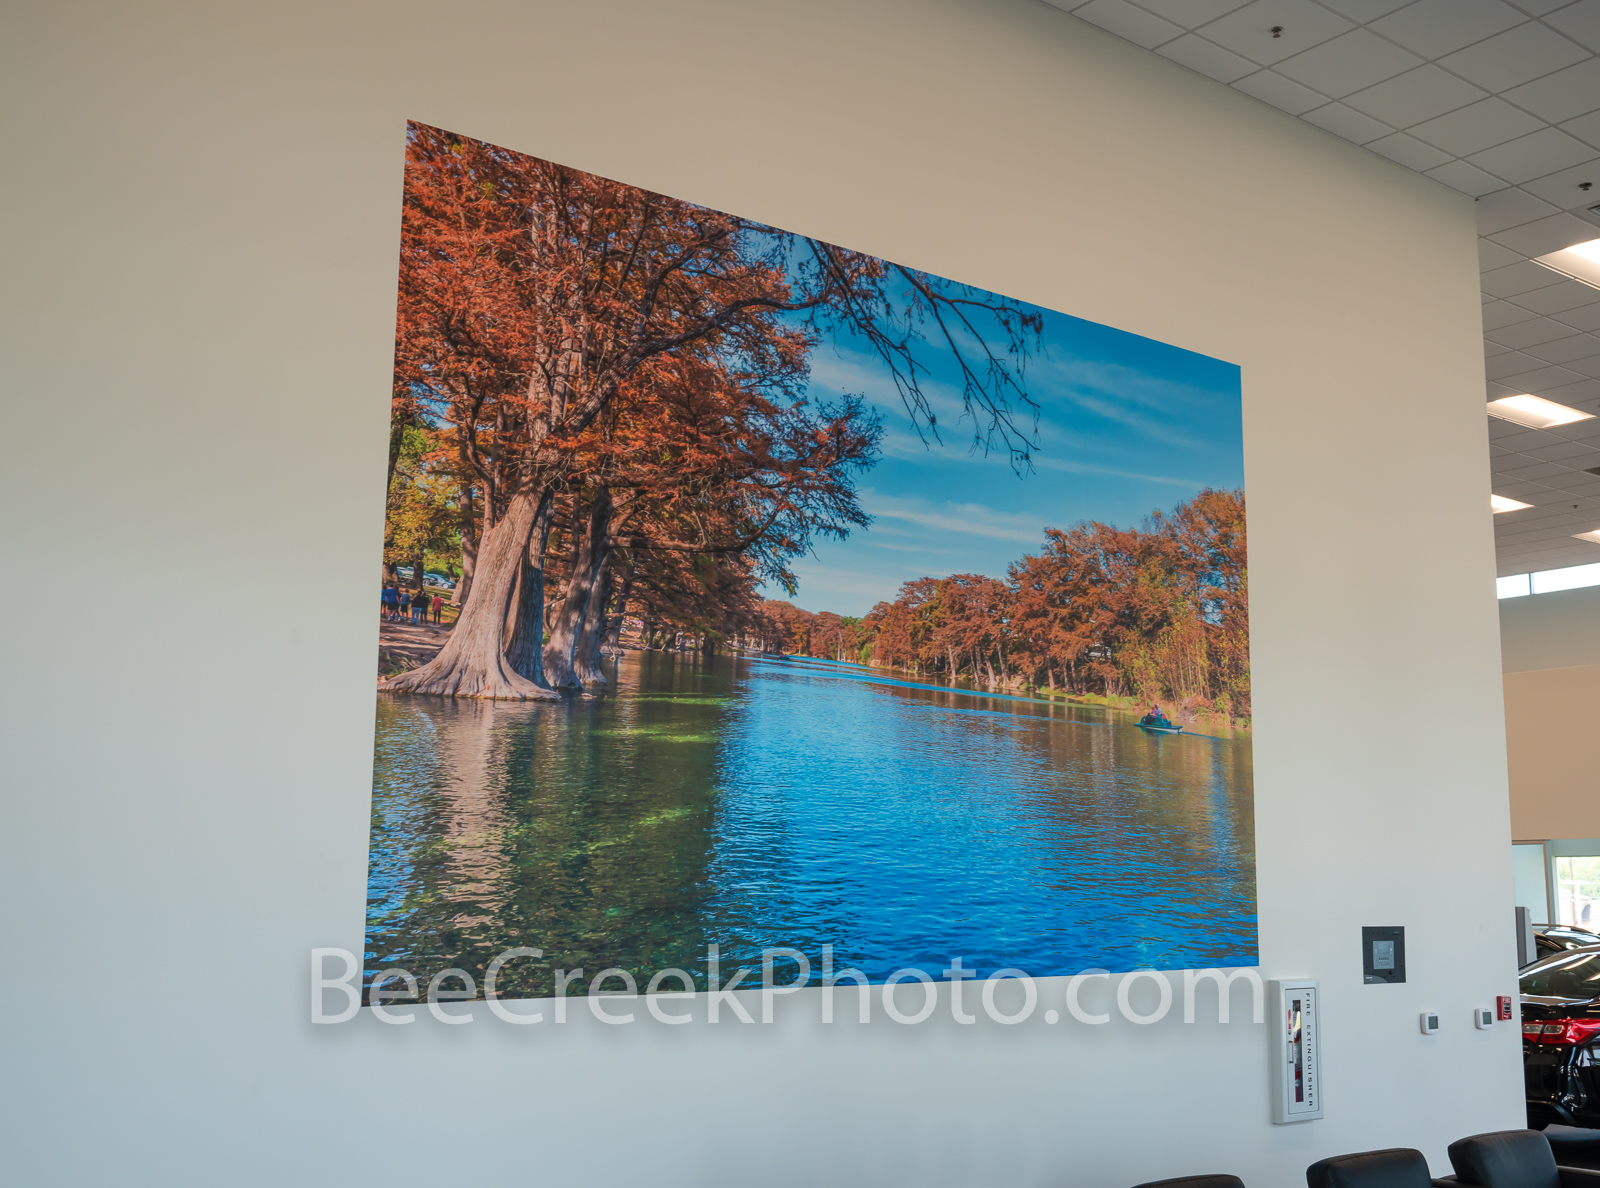 Wall mural, Texas hill country, large print, photo